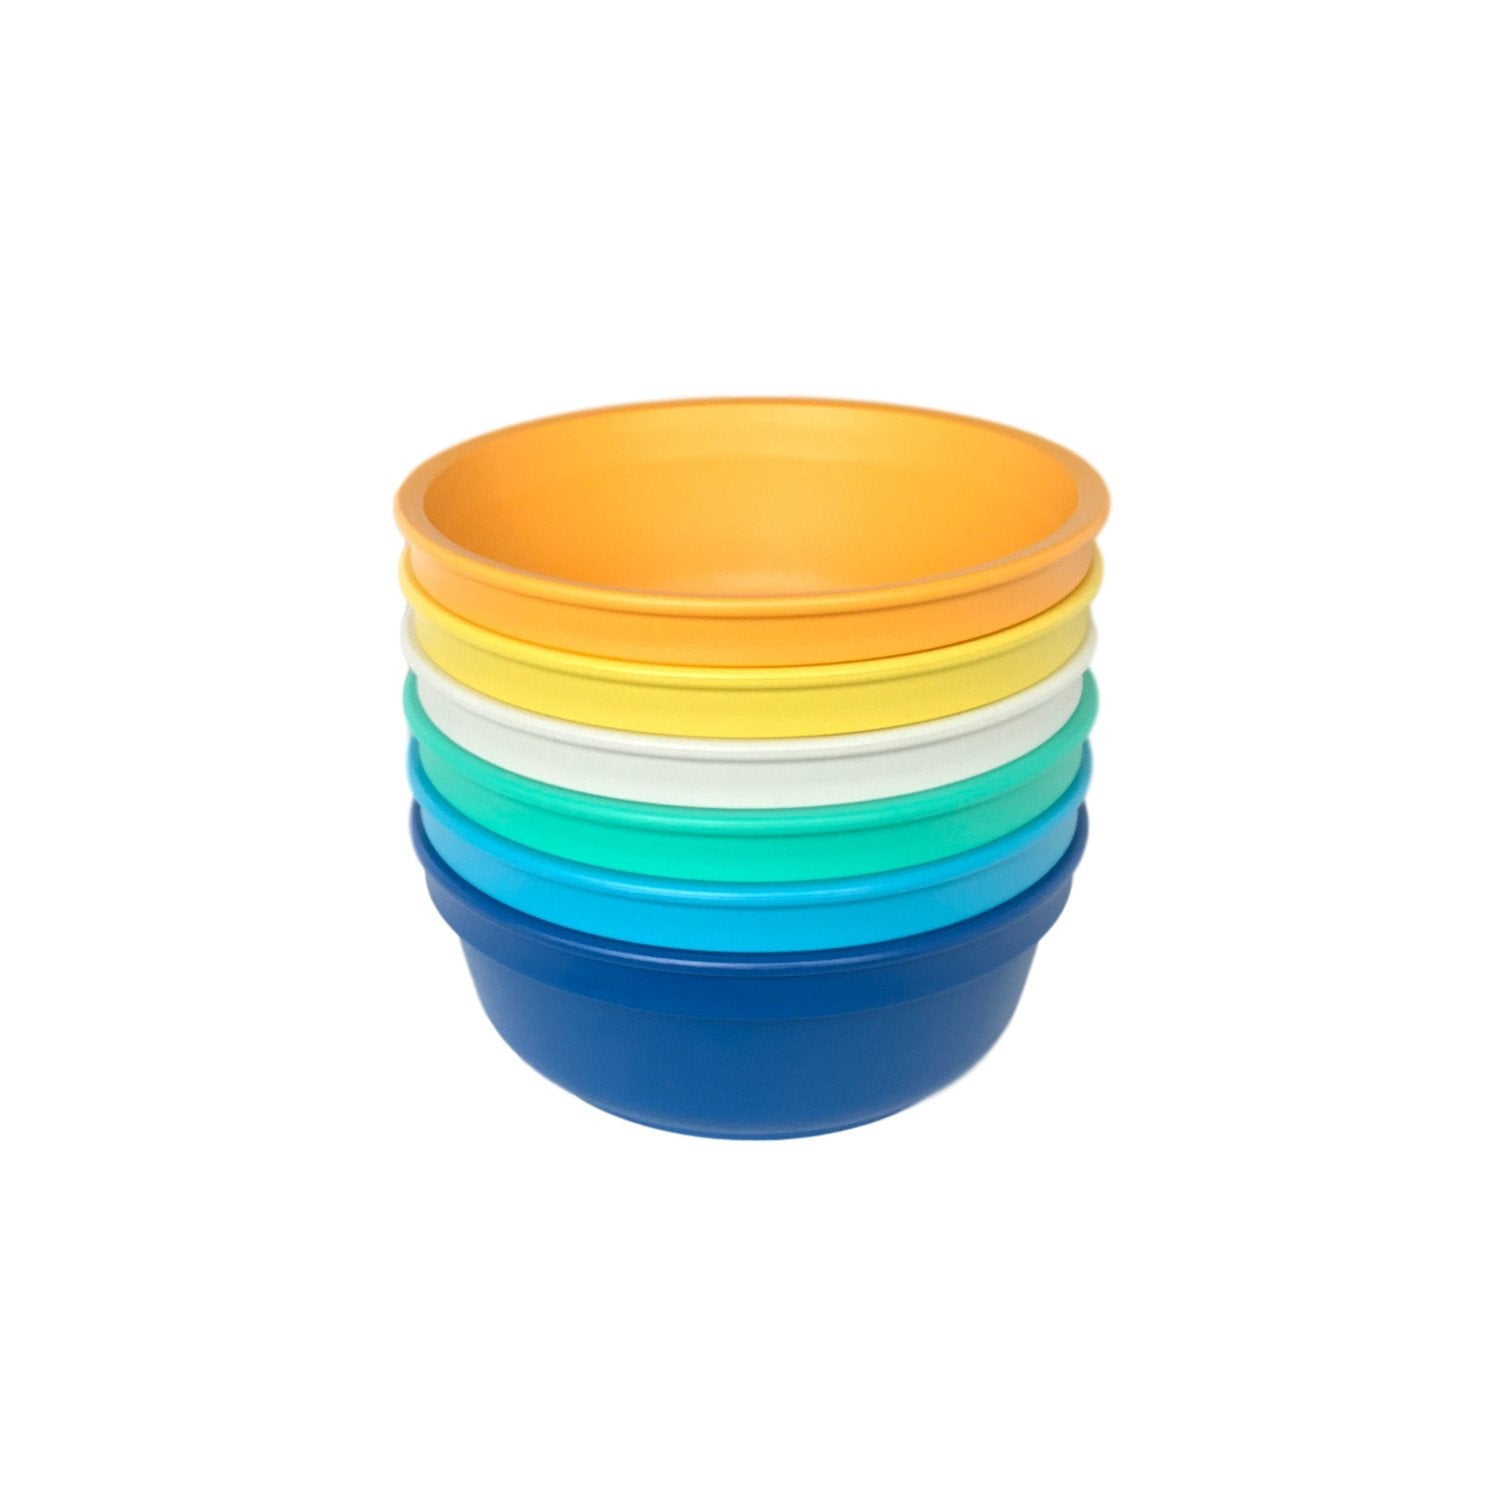 Replay 6 Piece Sets in Beach Replay Dinnerware Bowl at Little Earth Nest Eco Shop